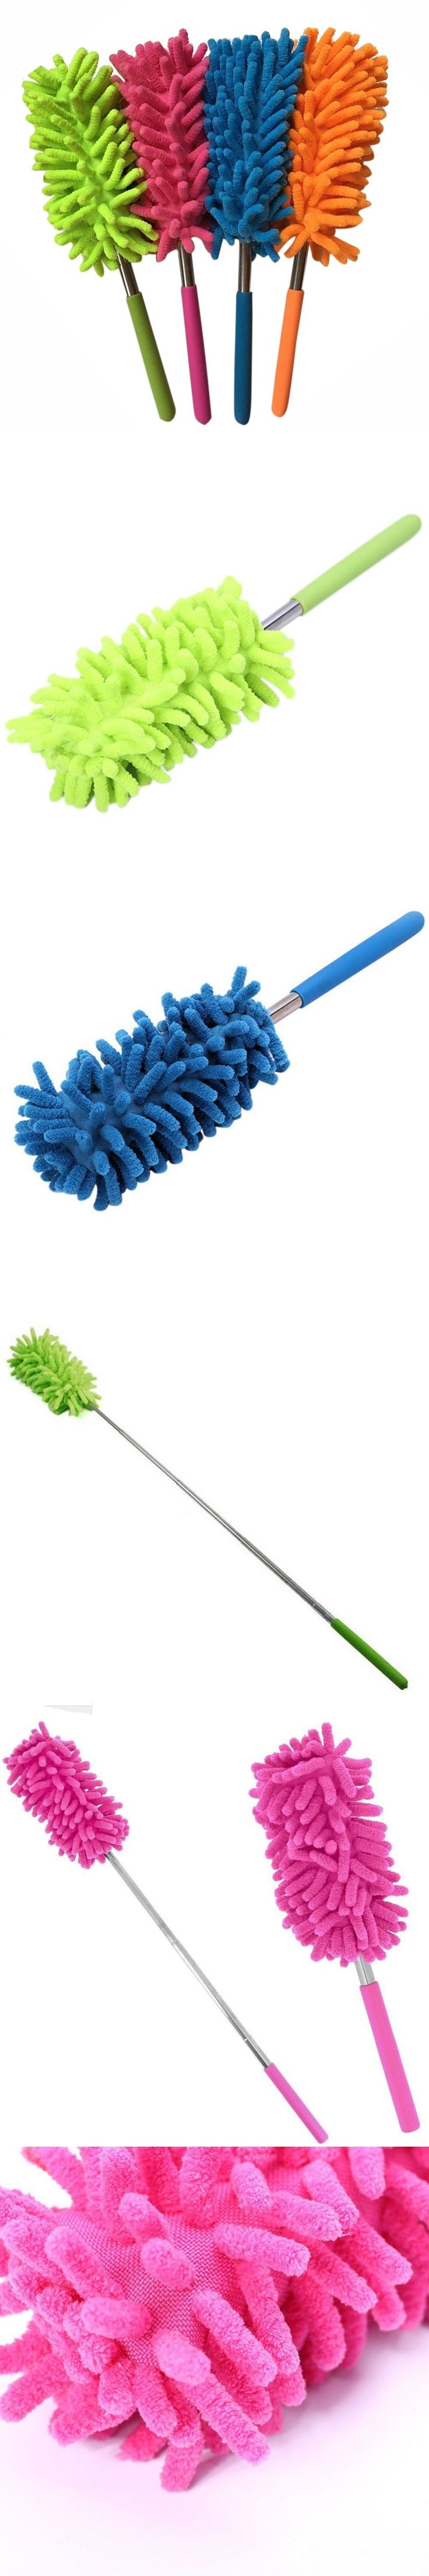 2017 Scalable Clean Duster Car Wash with Dust Brush mini stainless steel feather Dusters Brushes High Quality pincel